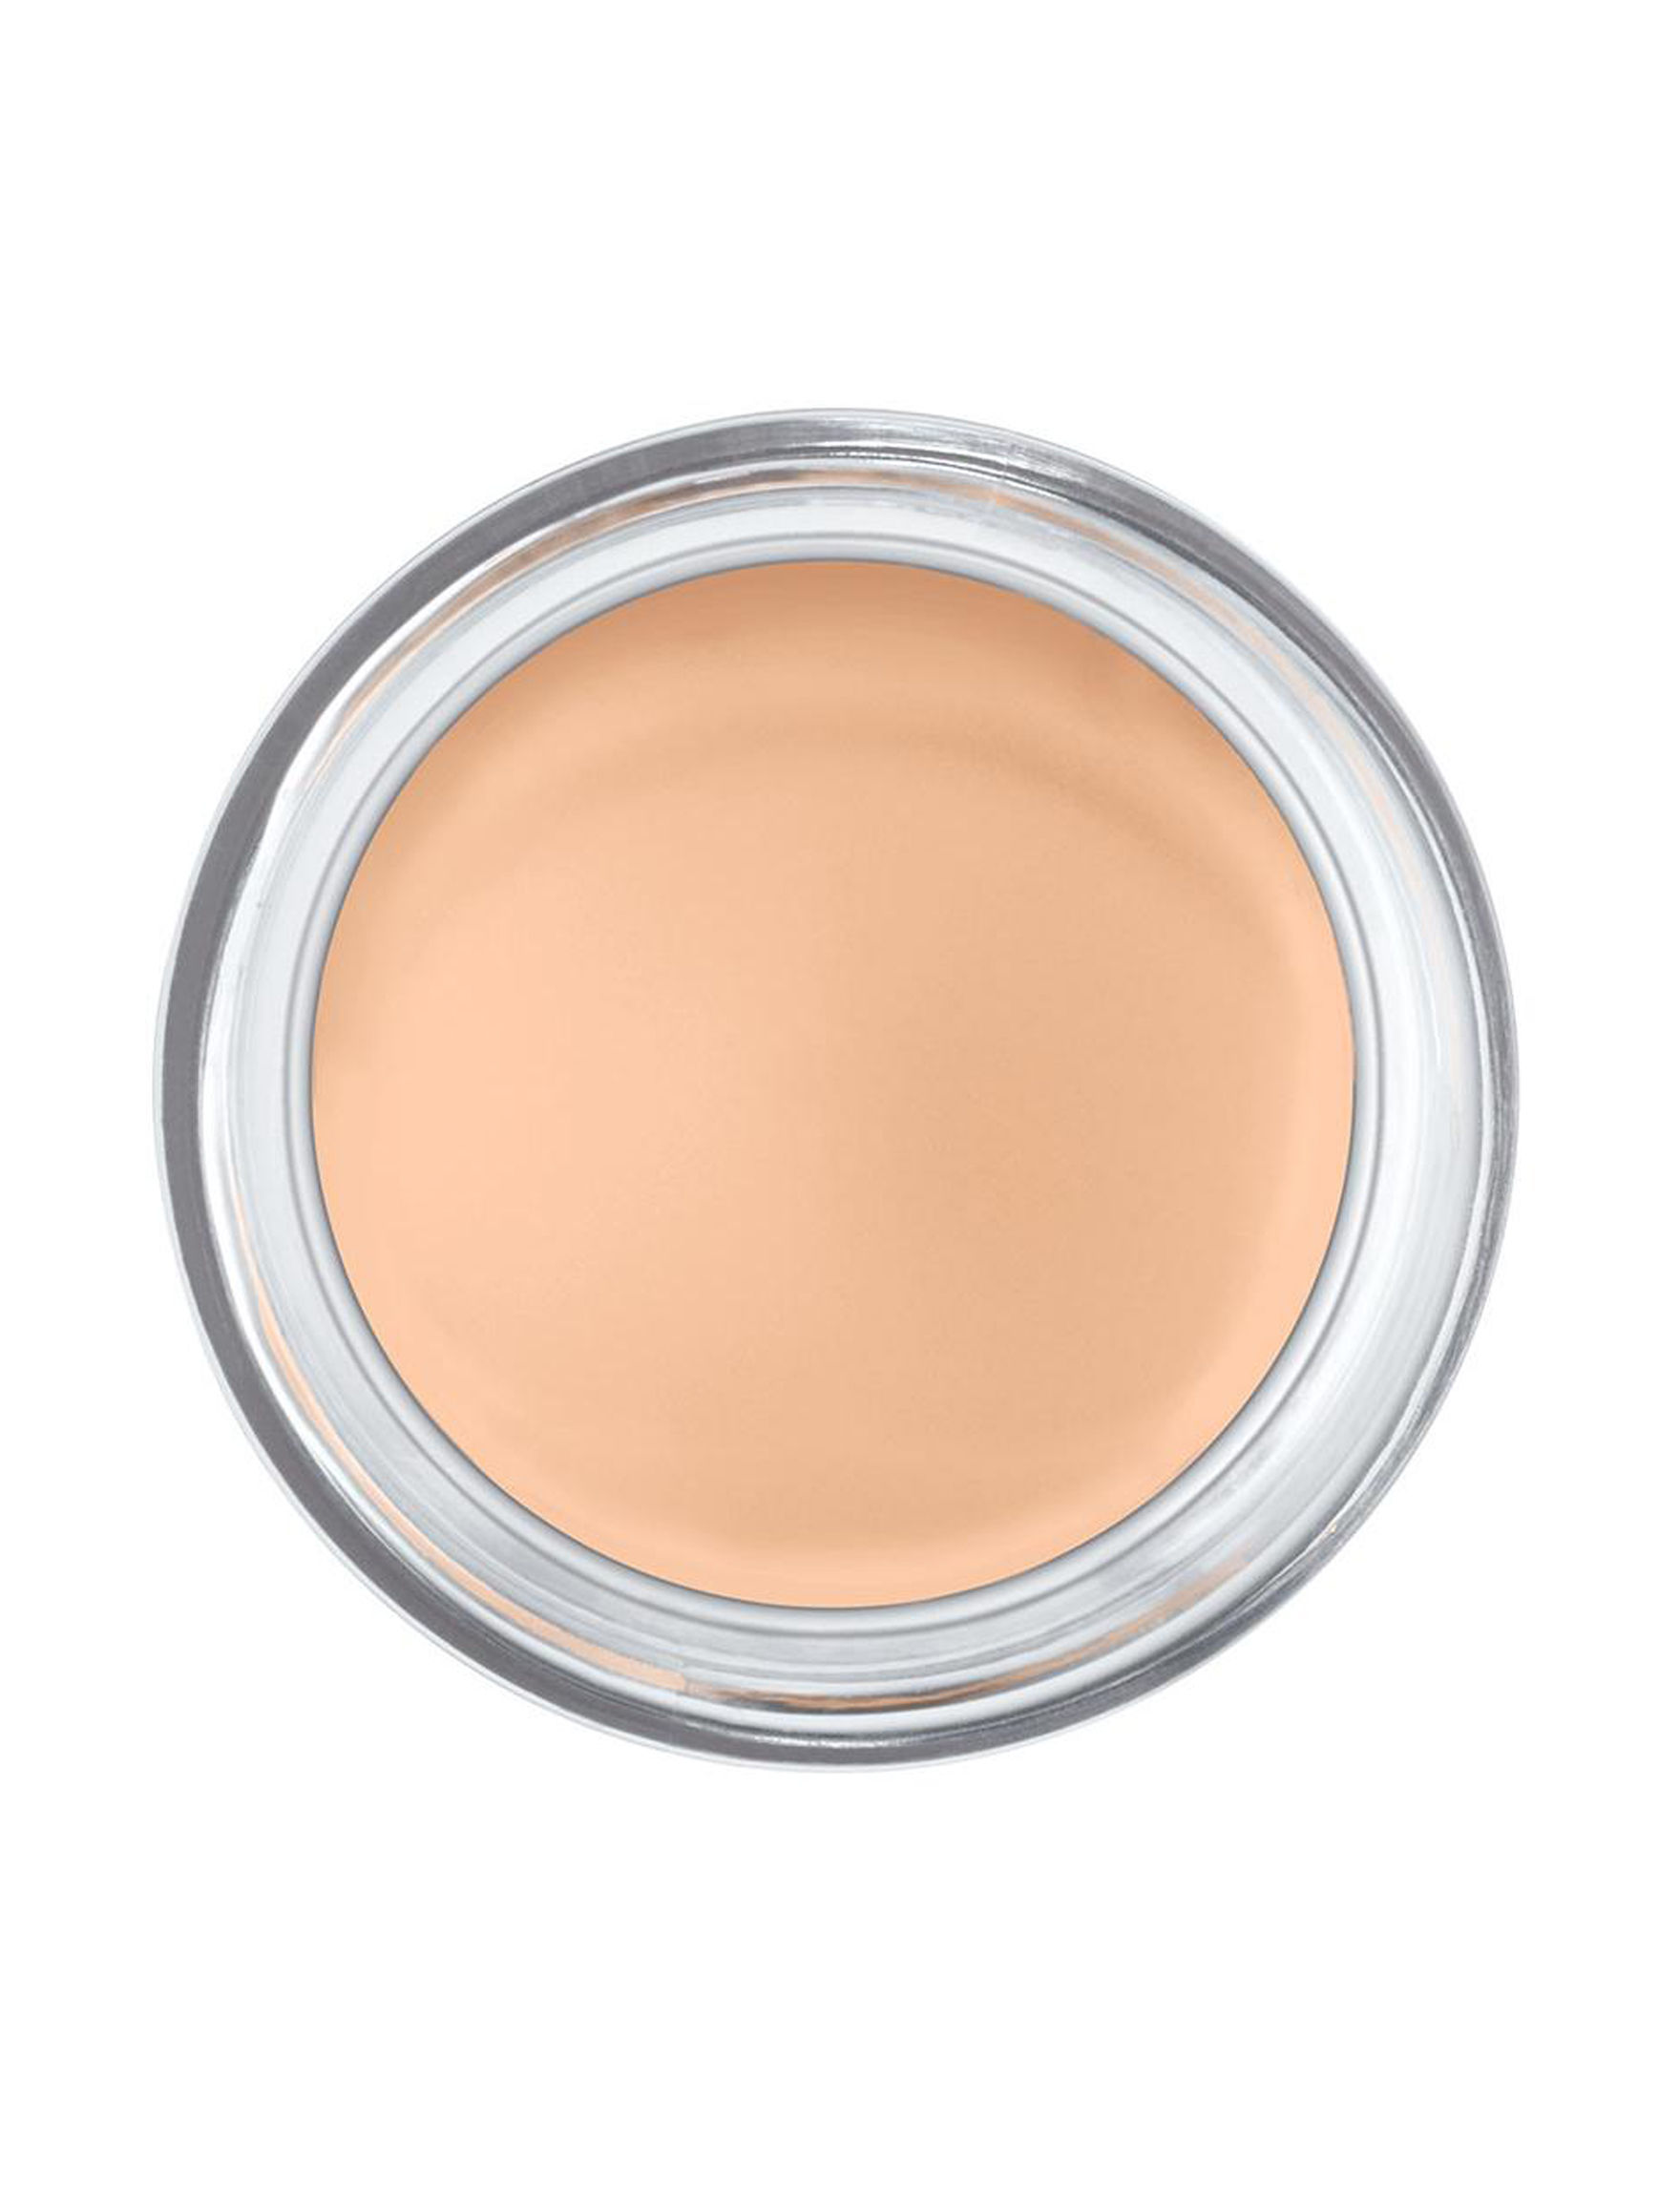 NYX Professional Makeup Porcelain Eyes Face Concealer